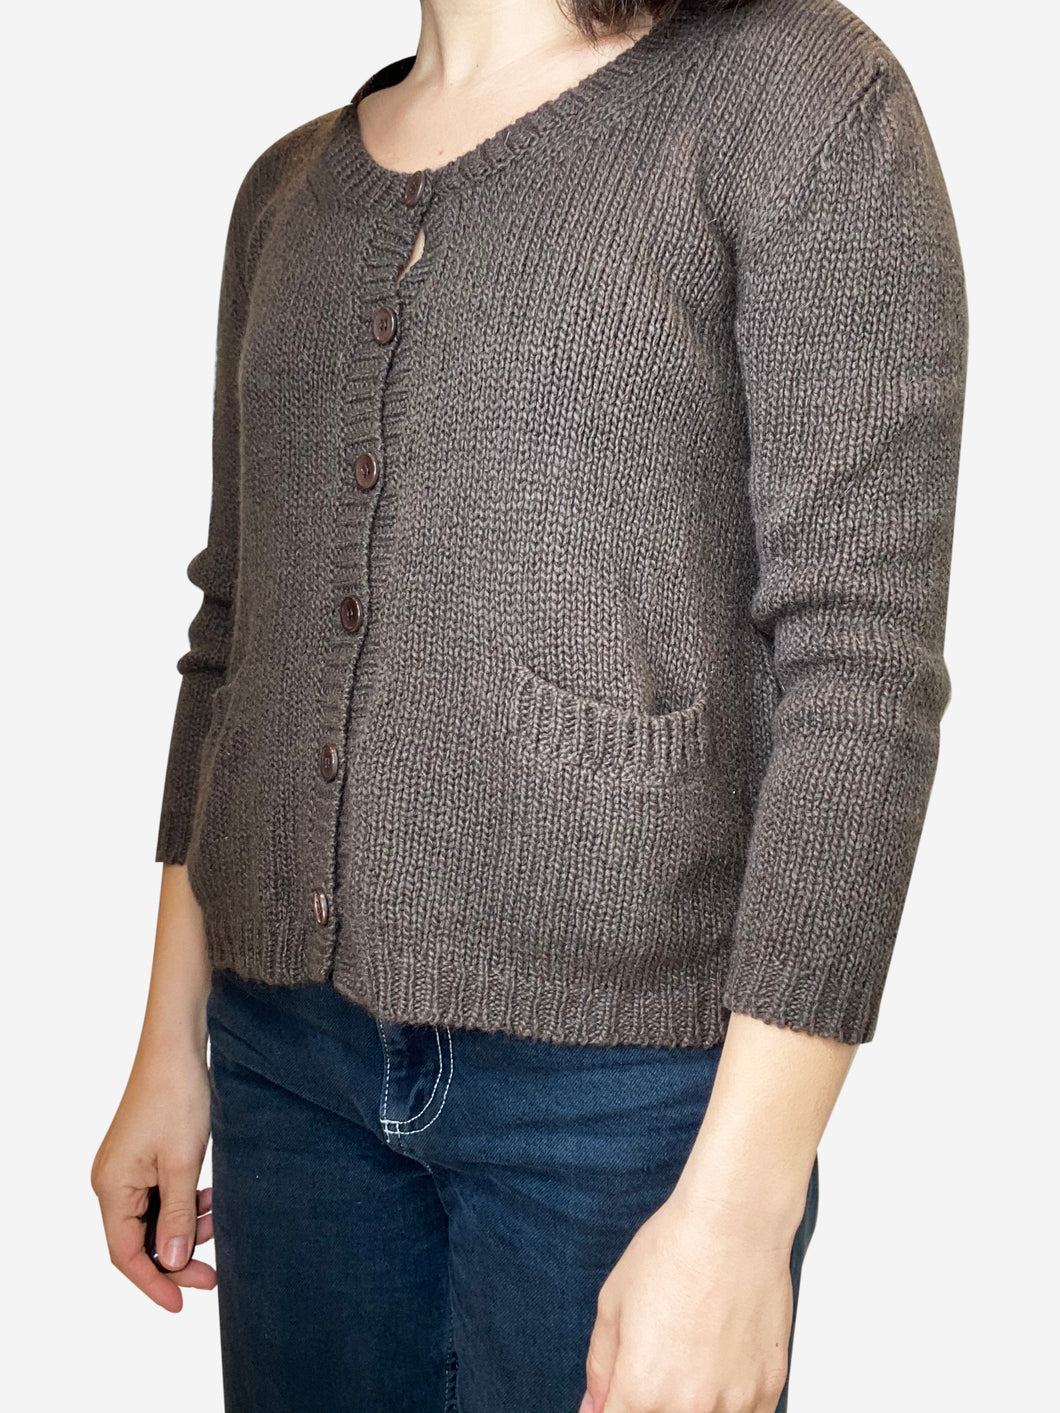 Brown cashmere cardigan with pockets - size S